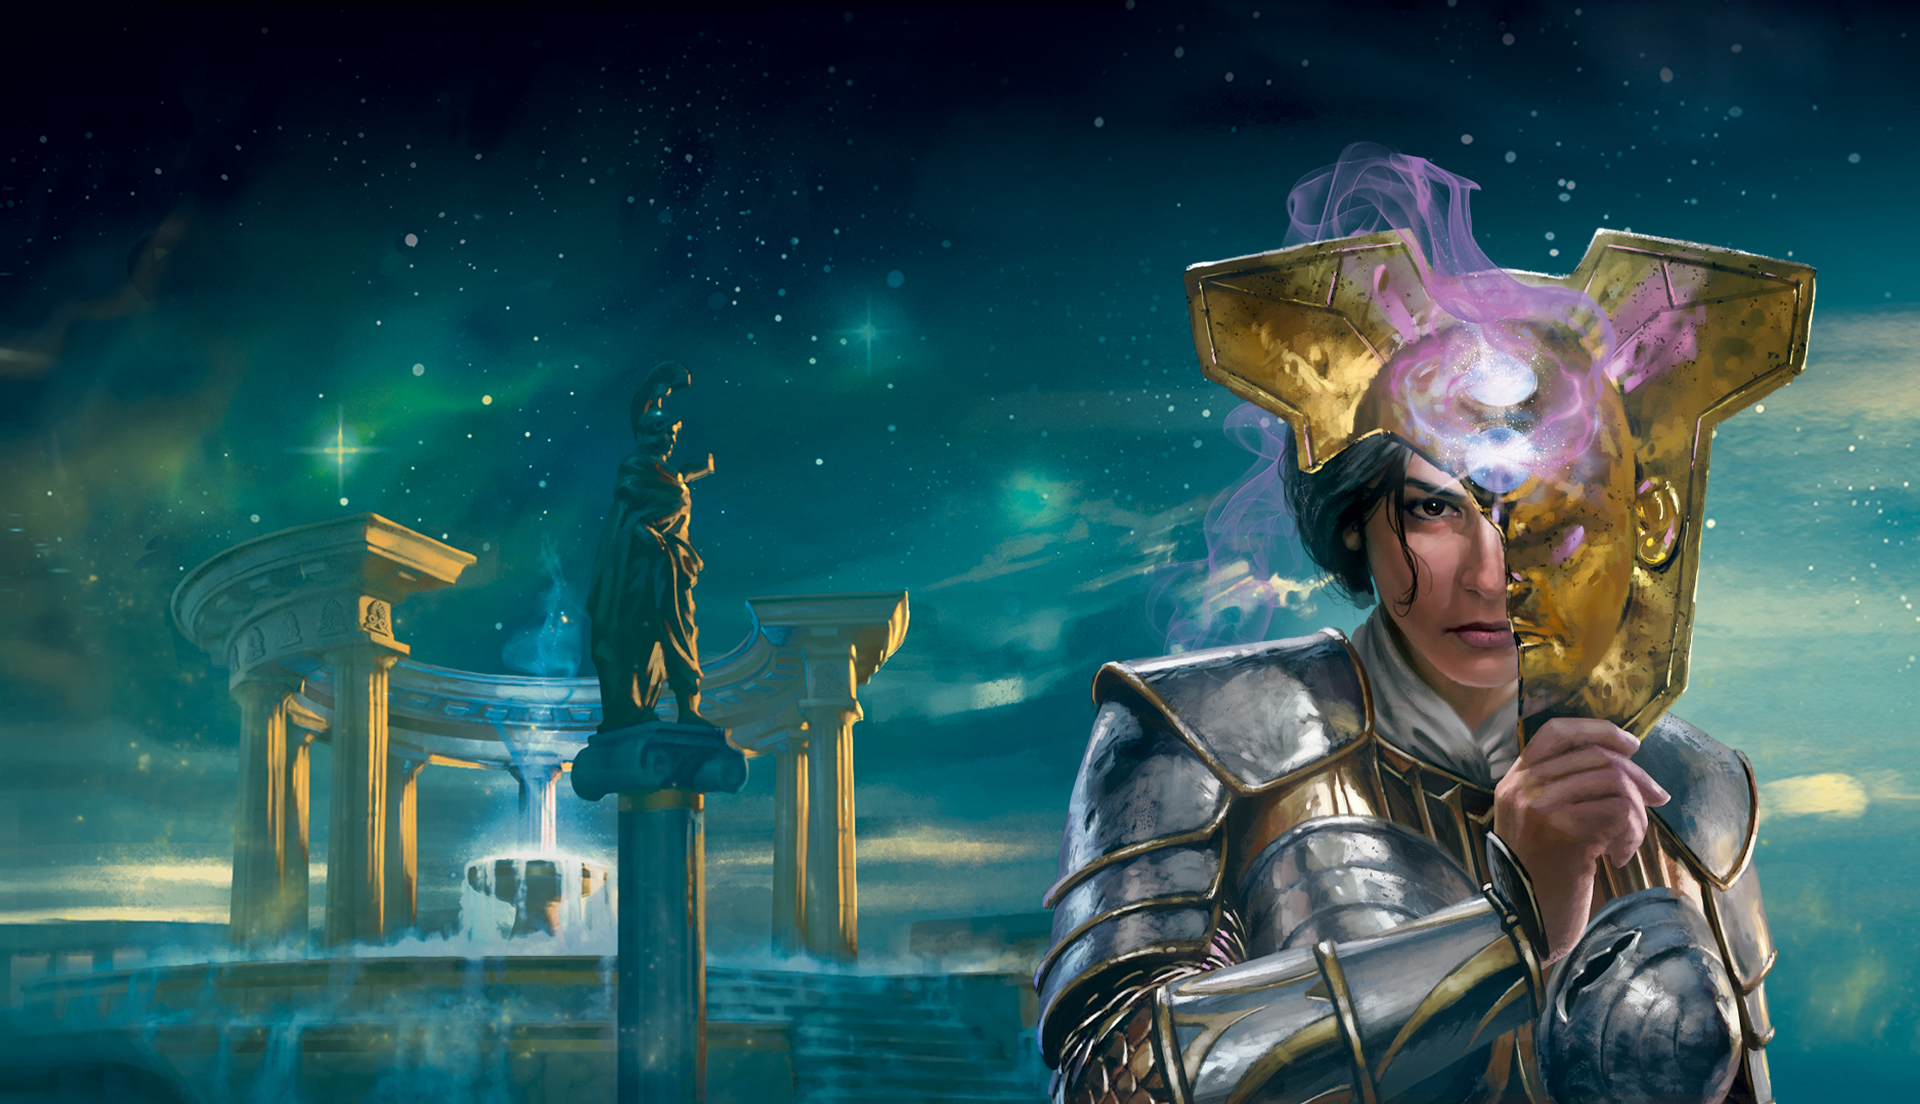 Key art from Theros Beyond Death featuring Elspeth holding an ornat golden death mask in front of her face.